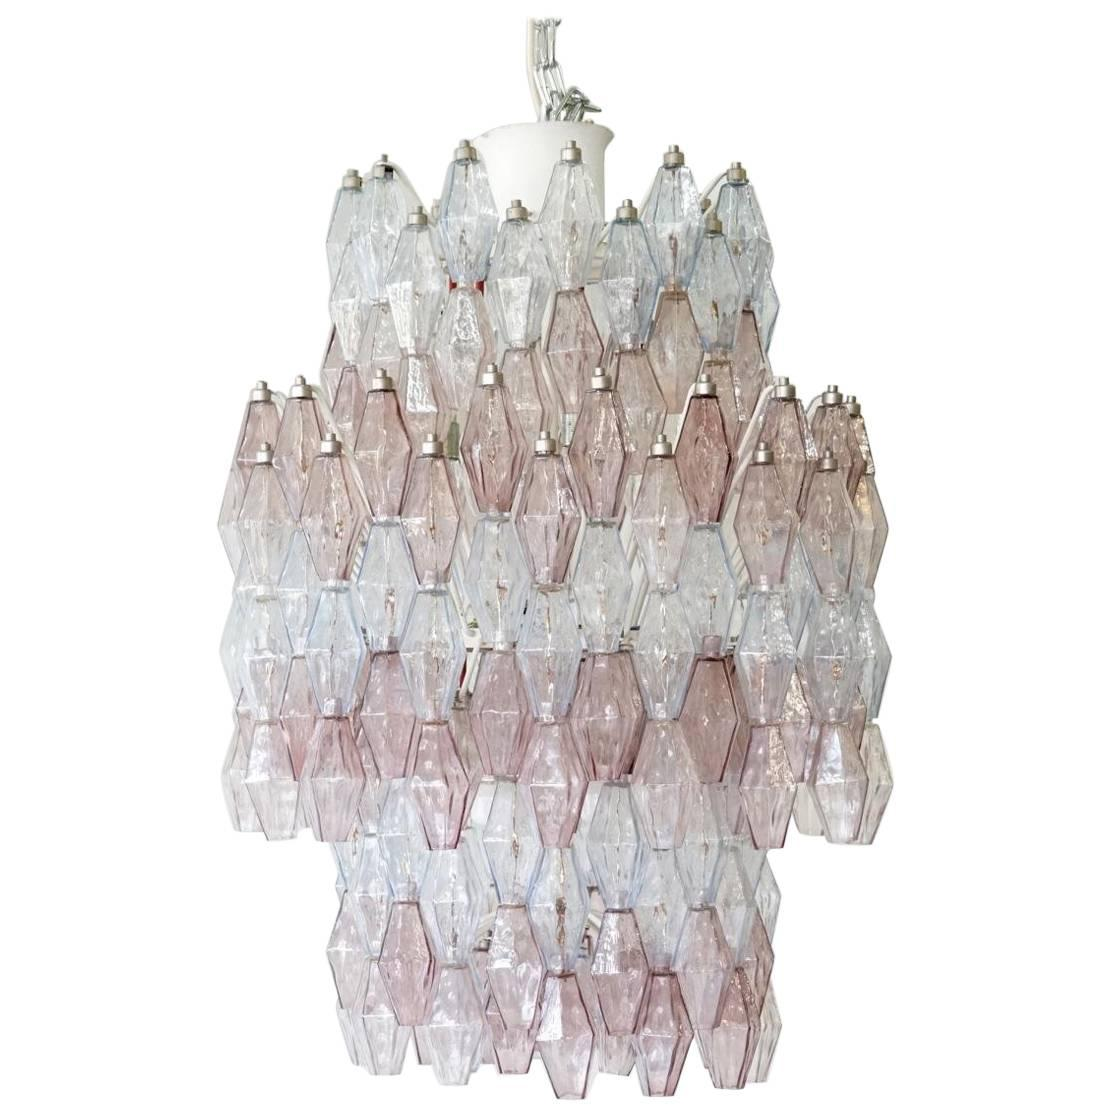 Large Polyhedr Venini Glass Chandelier Lamp Light Poliedri by Carlo Scarpa